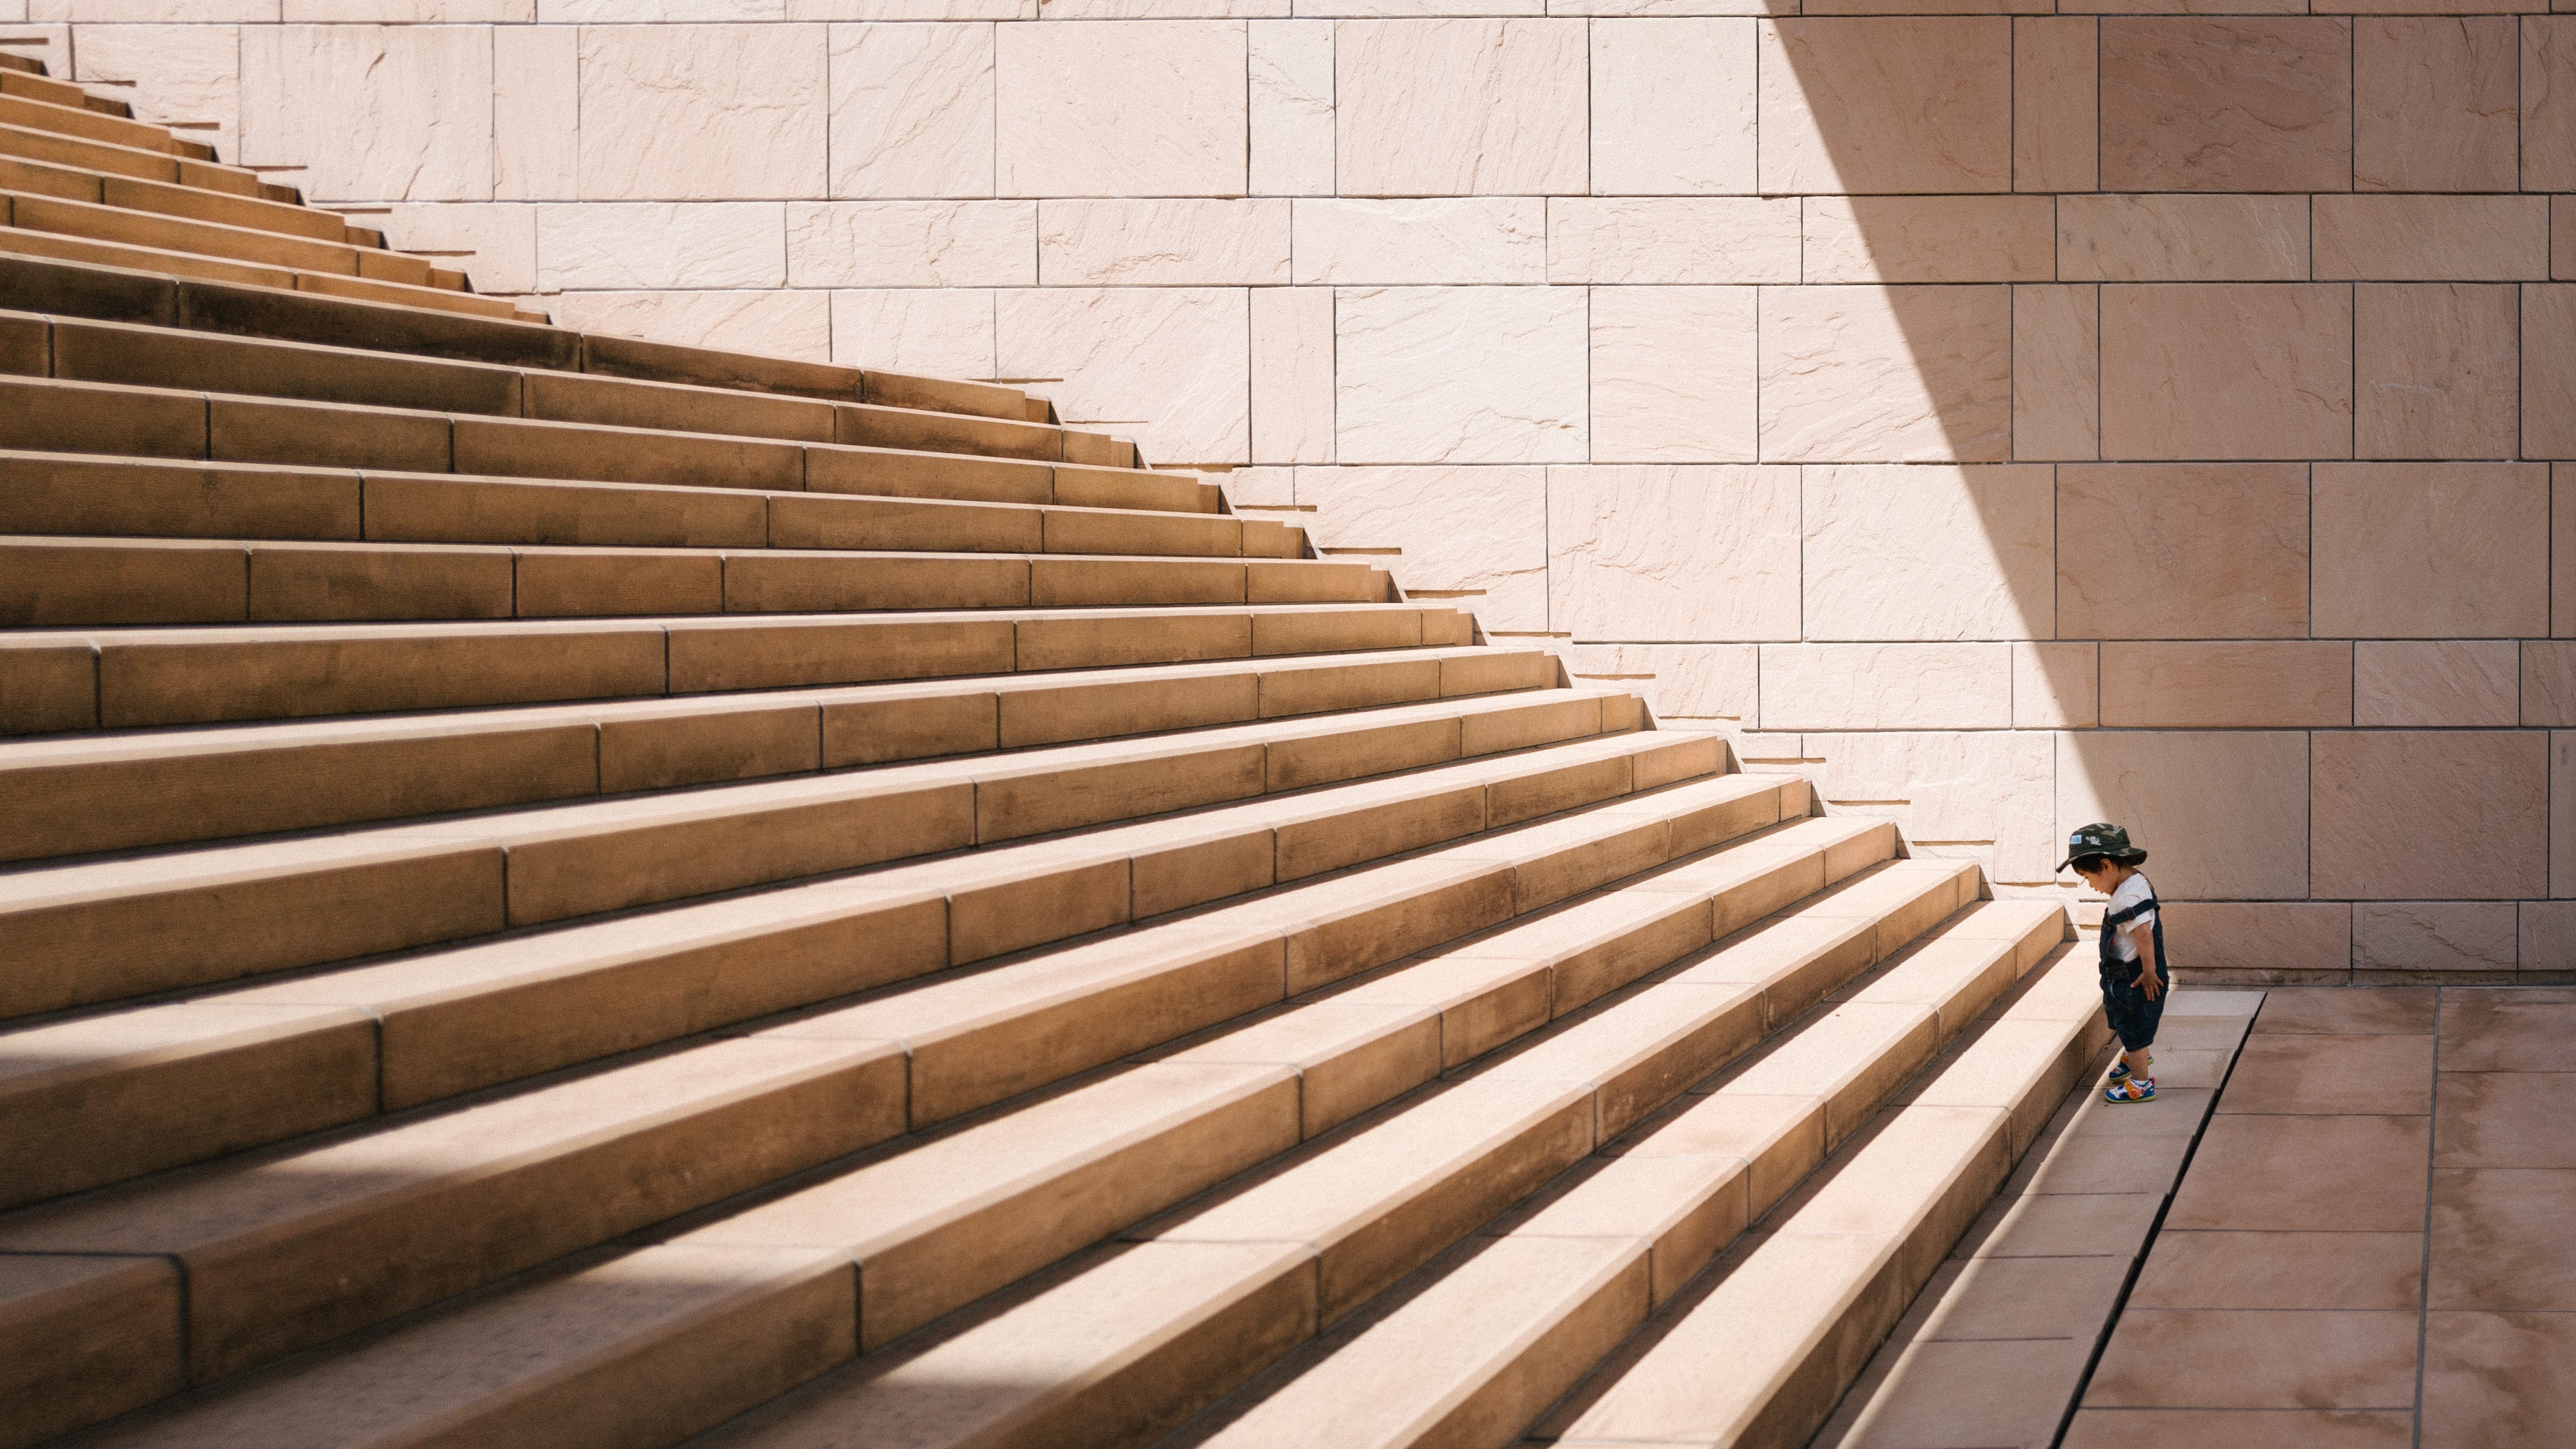 5 Stair Workouts to Level Up Your Fitness During Isolation